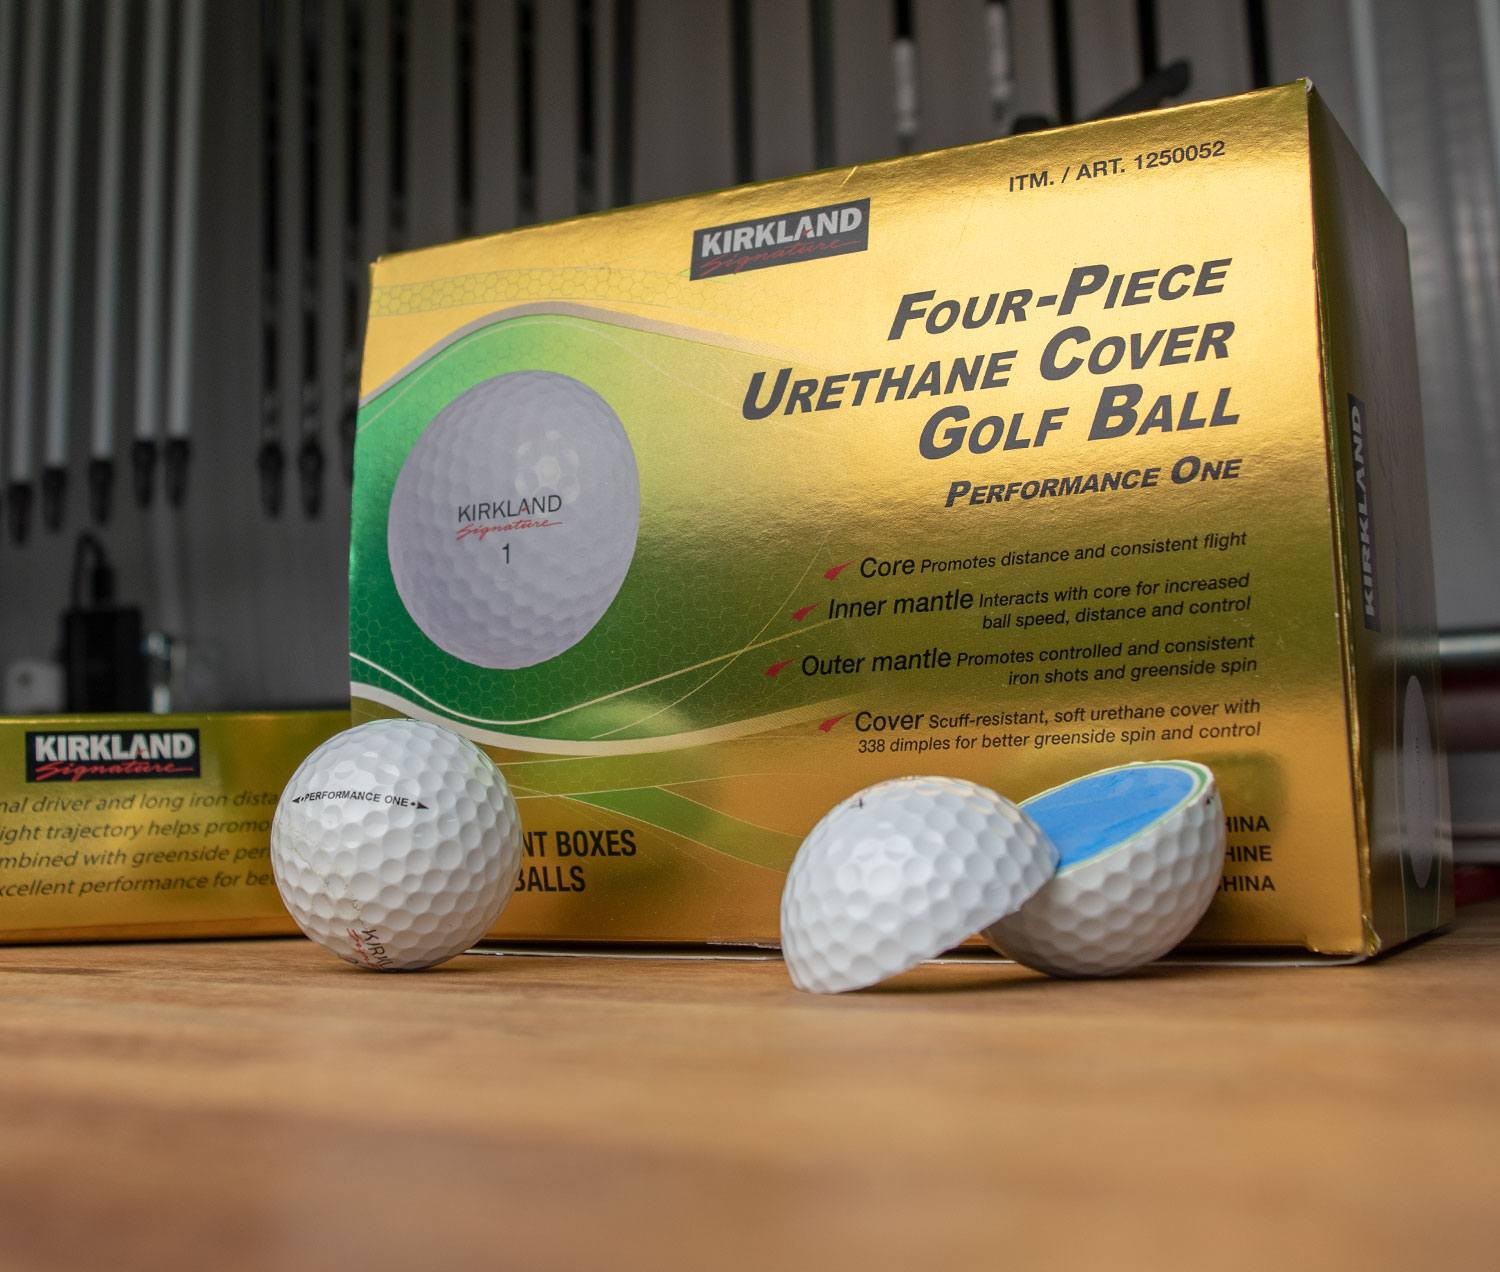 Costco Issues Refunds for Defective 4-Piece Kirkland Signature Performance One Golf Balls